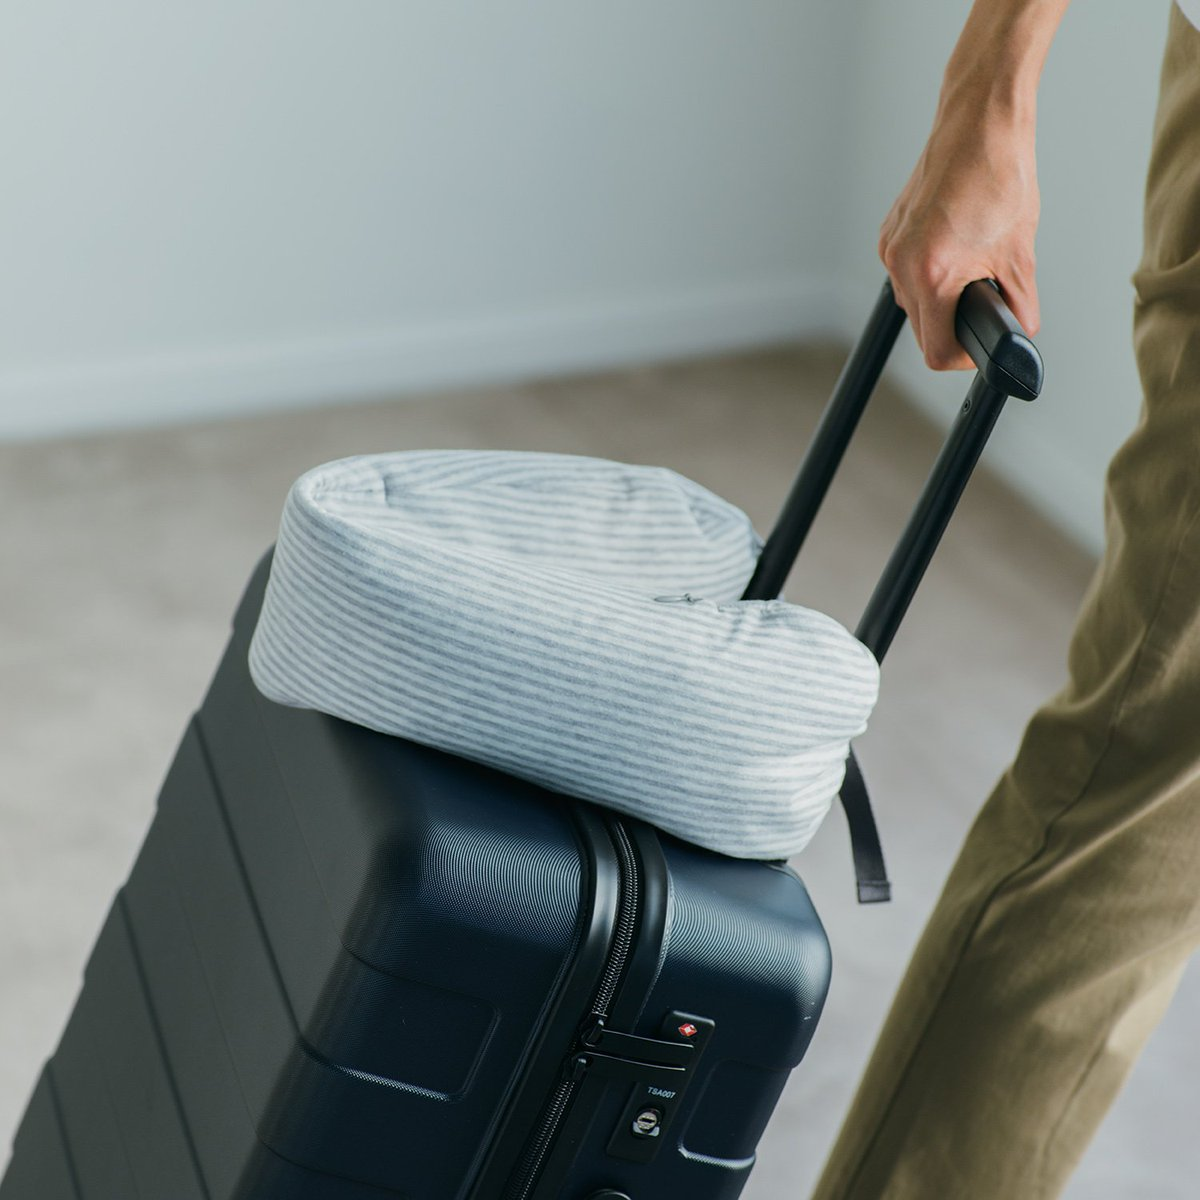 Muji Usa On Twitter Must Haves On Your Trips No Matter How Long Or Short Shop Our Weekend Flashsale For Some Of Muji S Most Popular Travel Accessories Like Our Well Fitted Neck Cushions